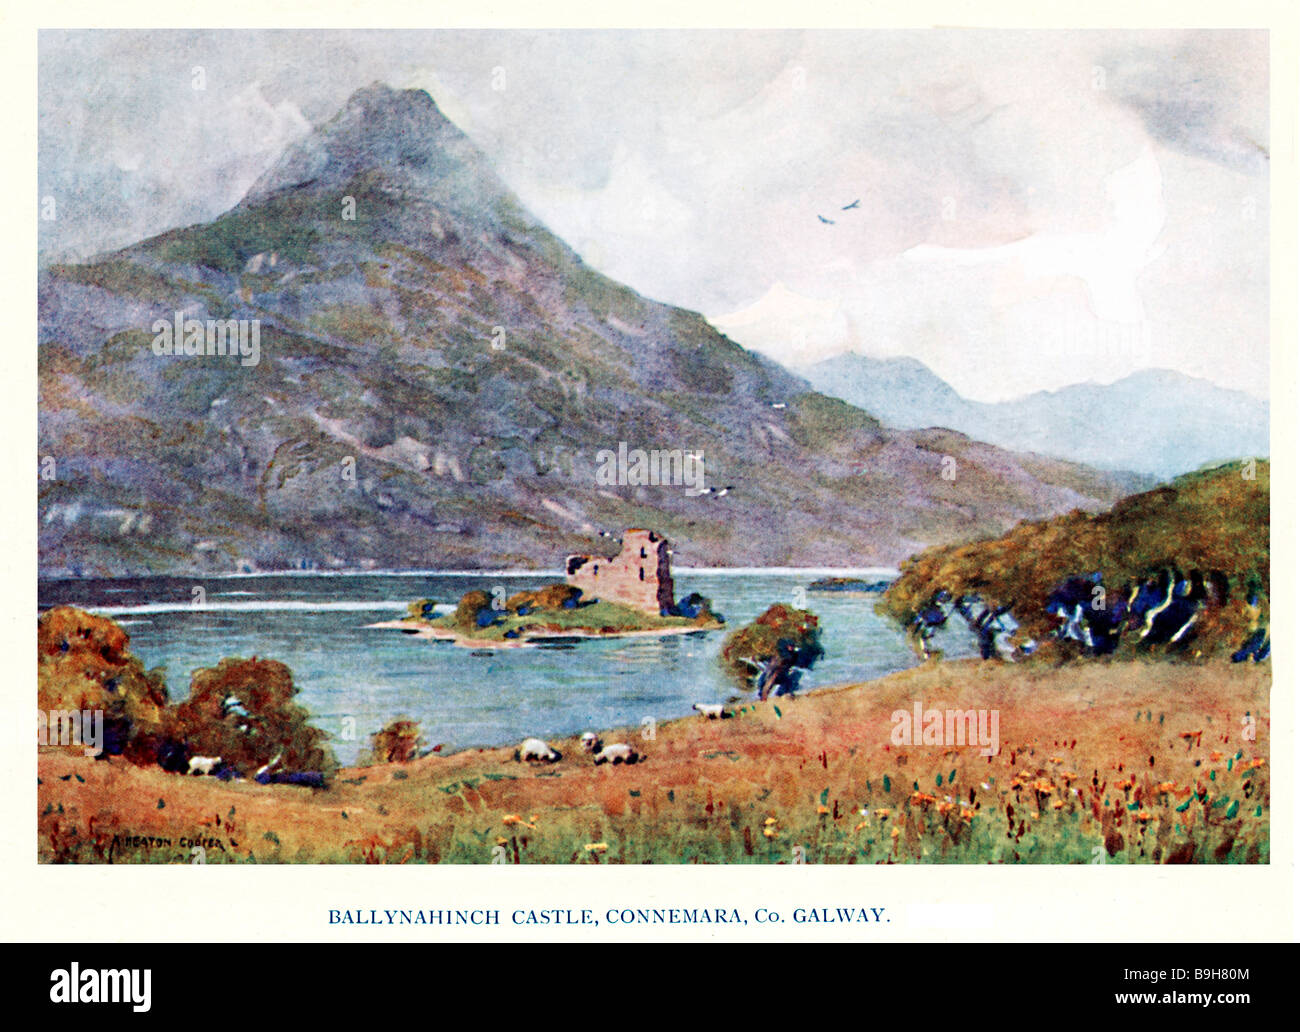 Ballynahinch Castle Connemara 1925 painting of the